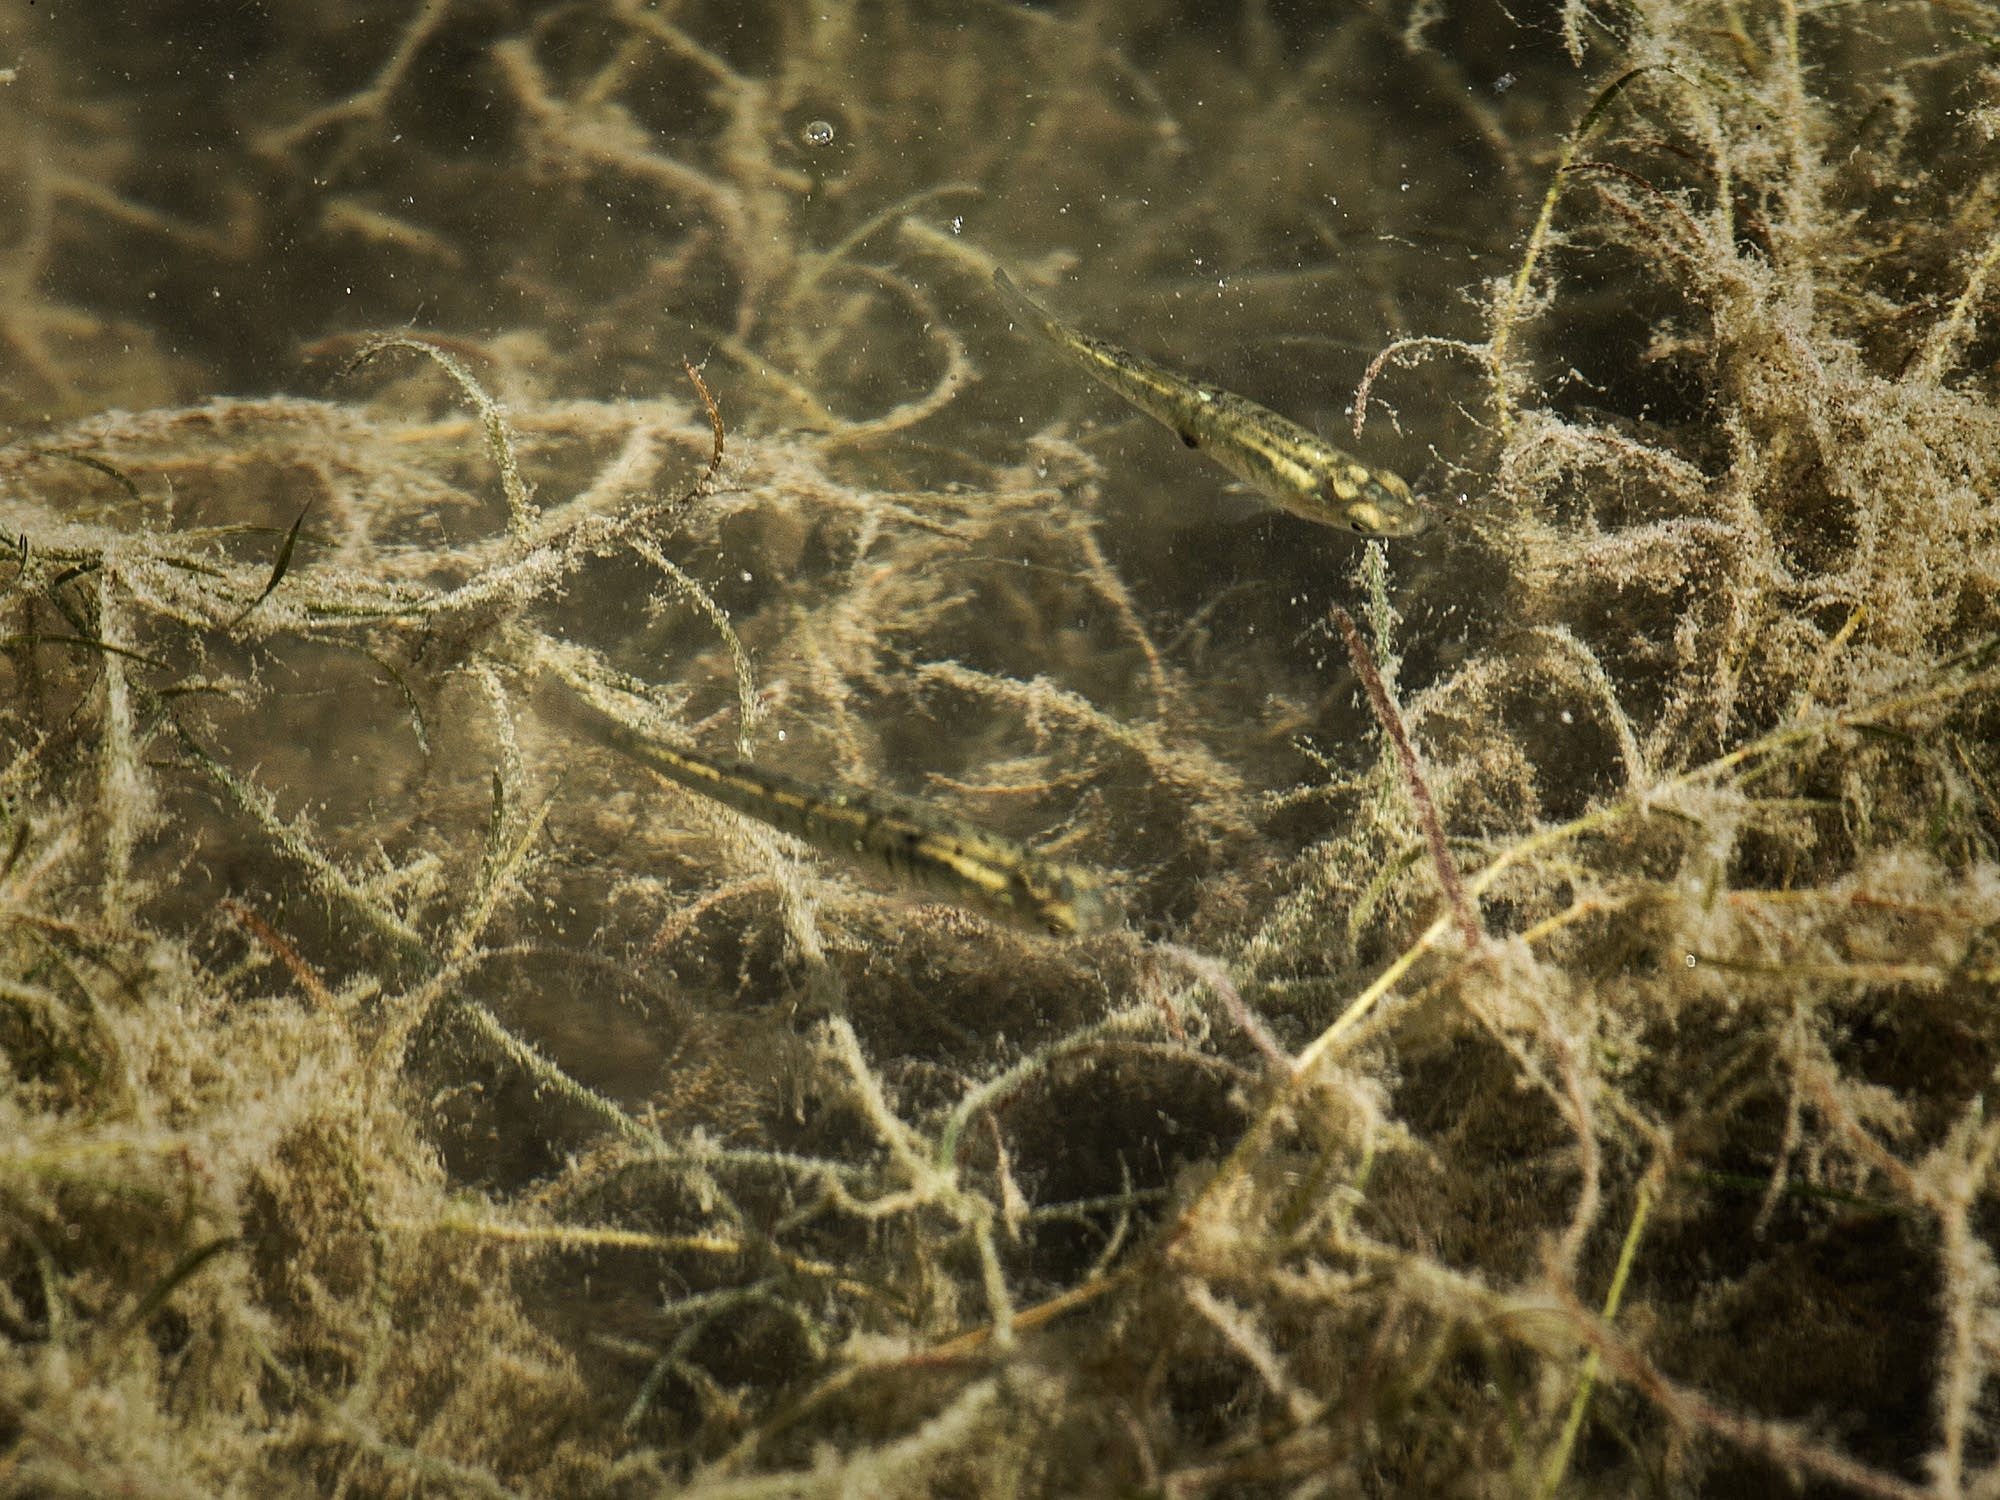 Starry stonewort can alter fish spawn.